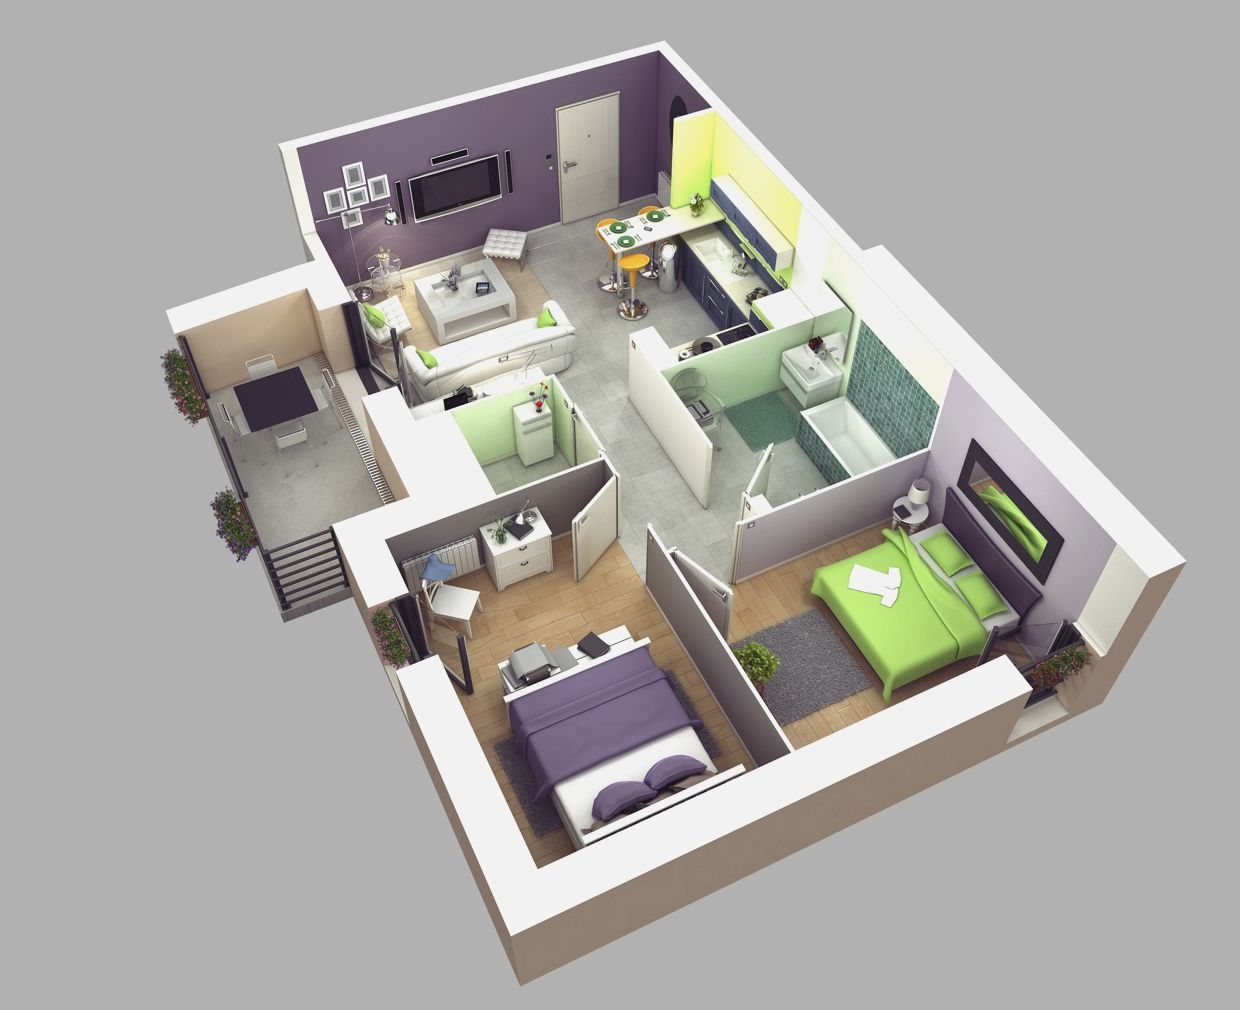 1 bedroom house plans 3d just the two of us apartment 2 bed room house plans